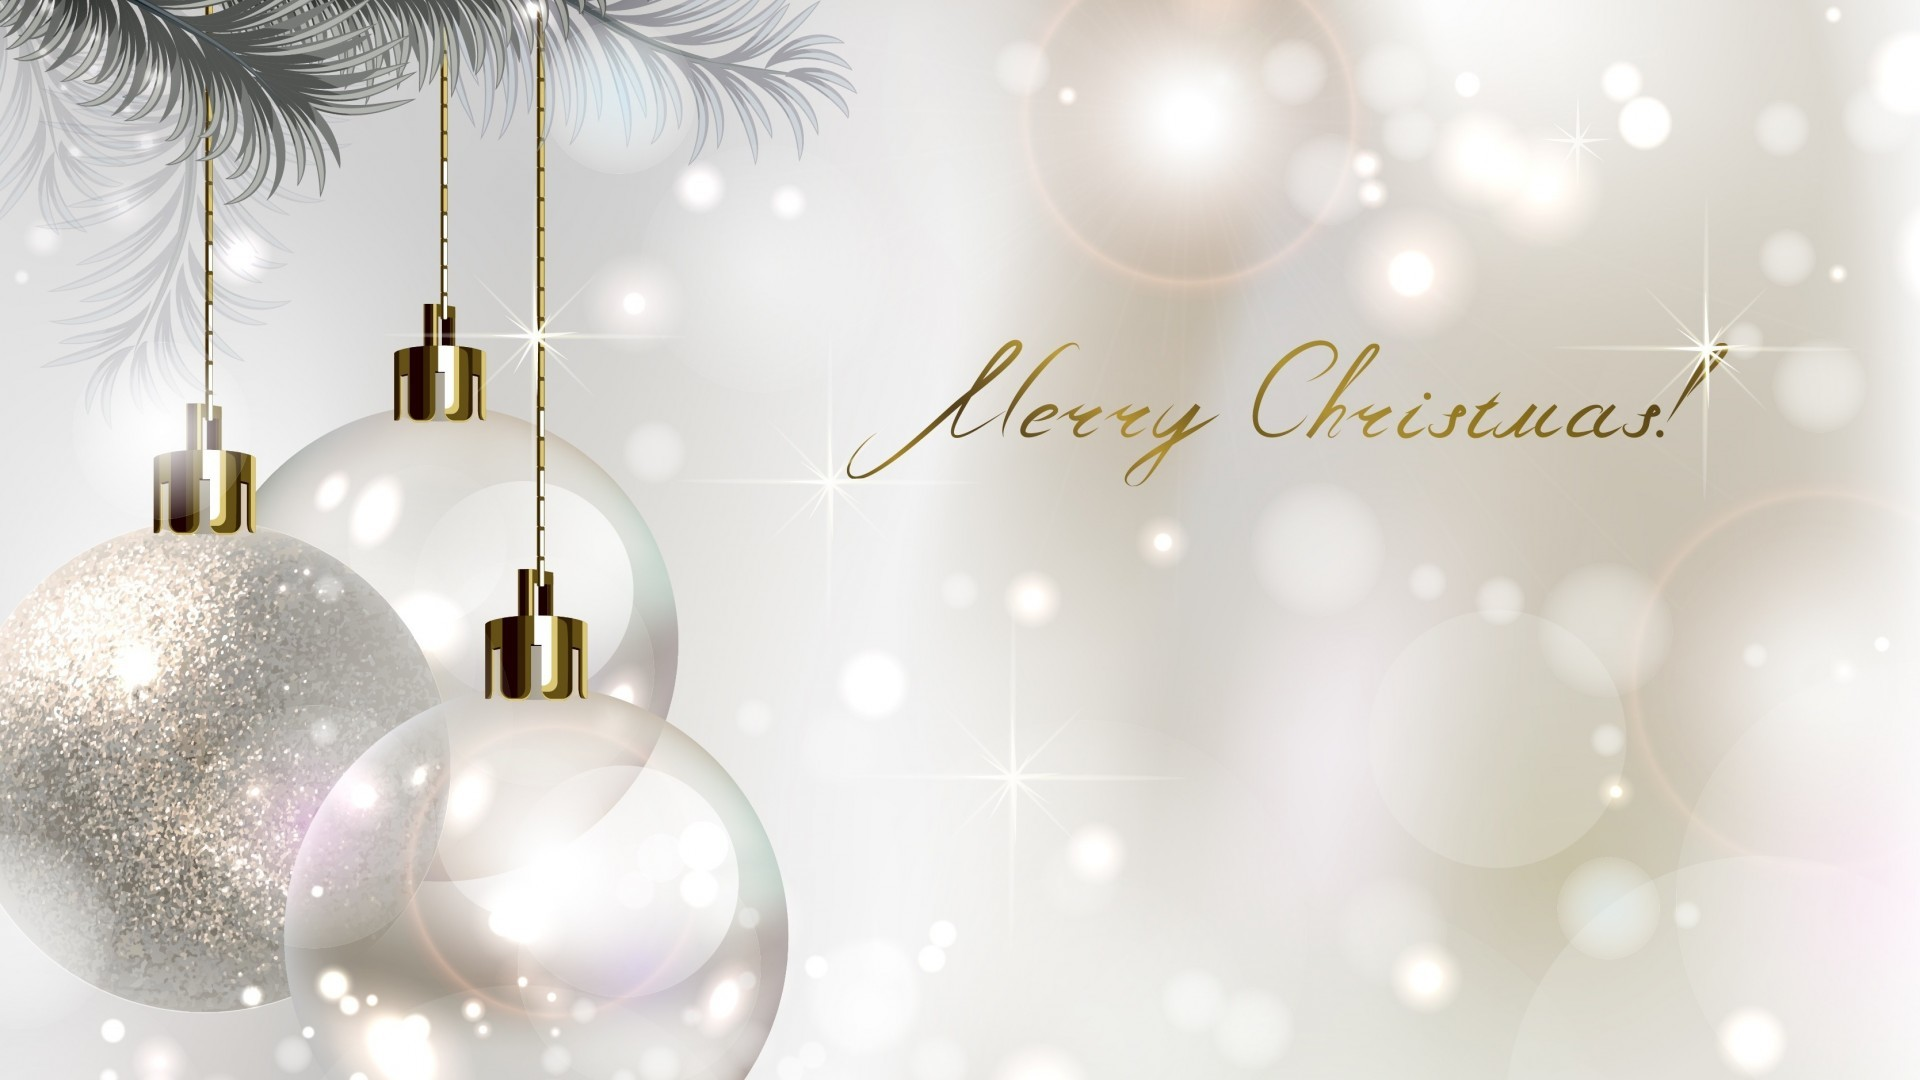 1920x1080 Christmas-Wallpaper-Background